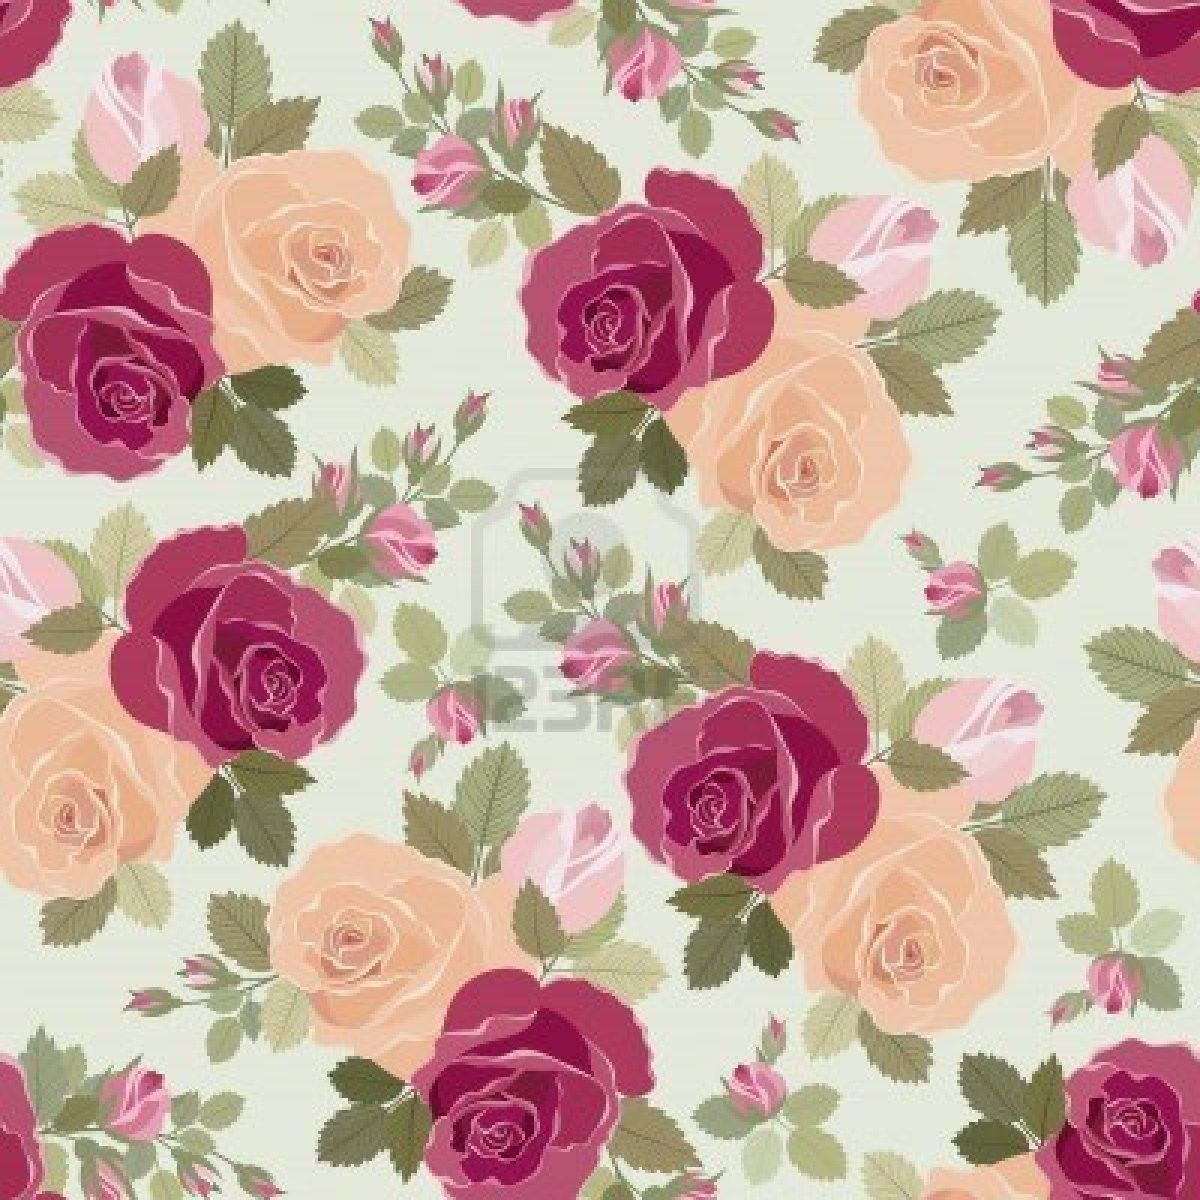 50 Vintage Flower Wallpaper For Iphone On Wallpapersafari